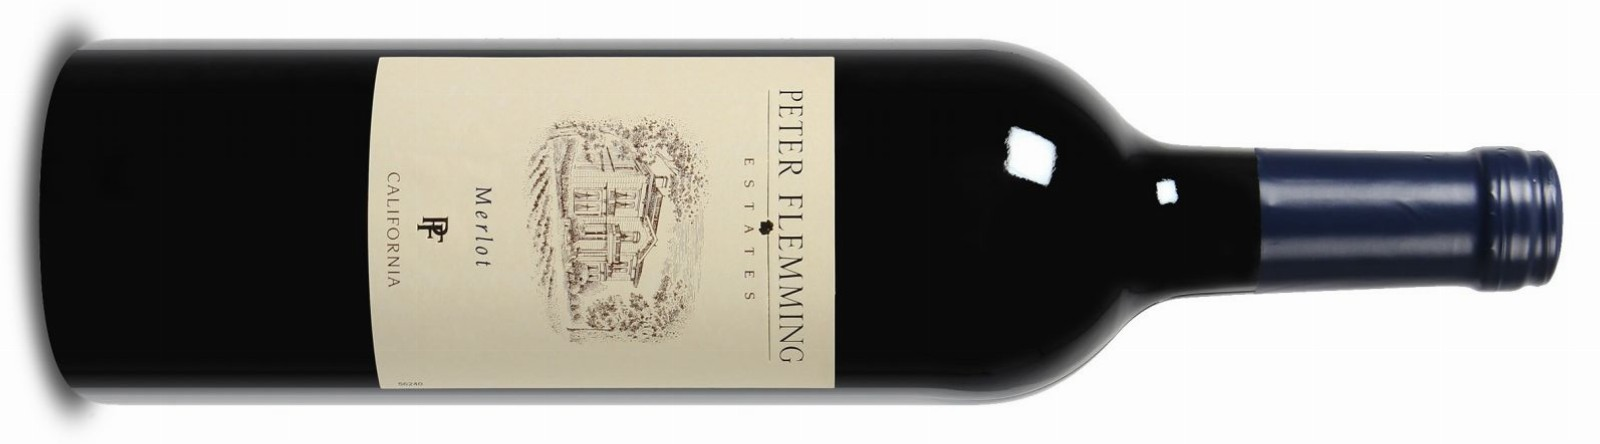 Peter Flemming Estates Merlot 2012